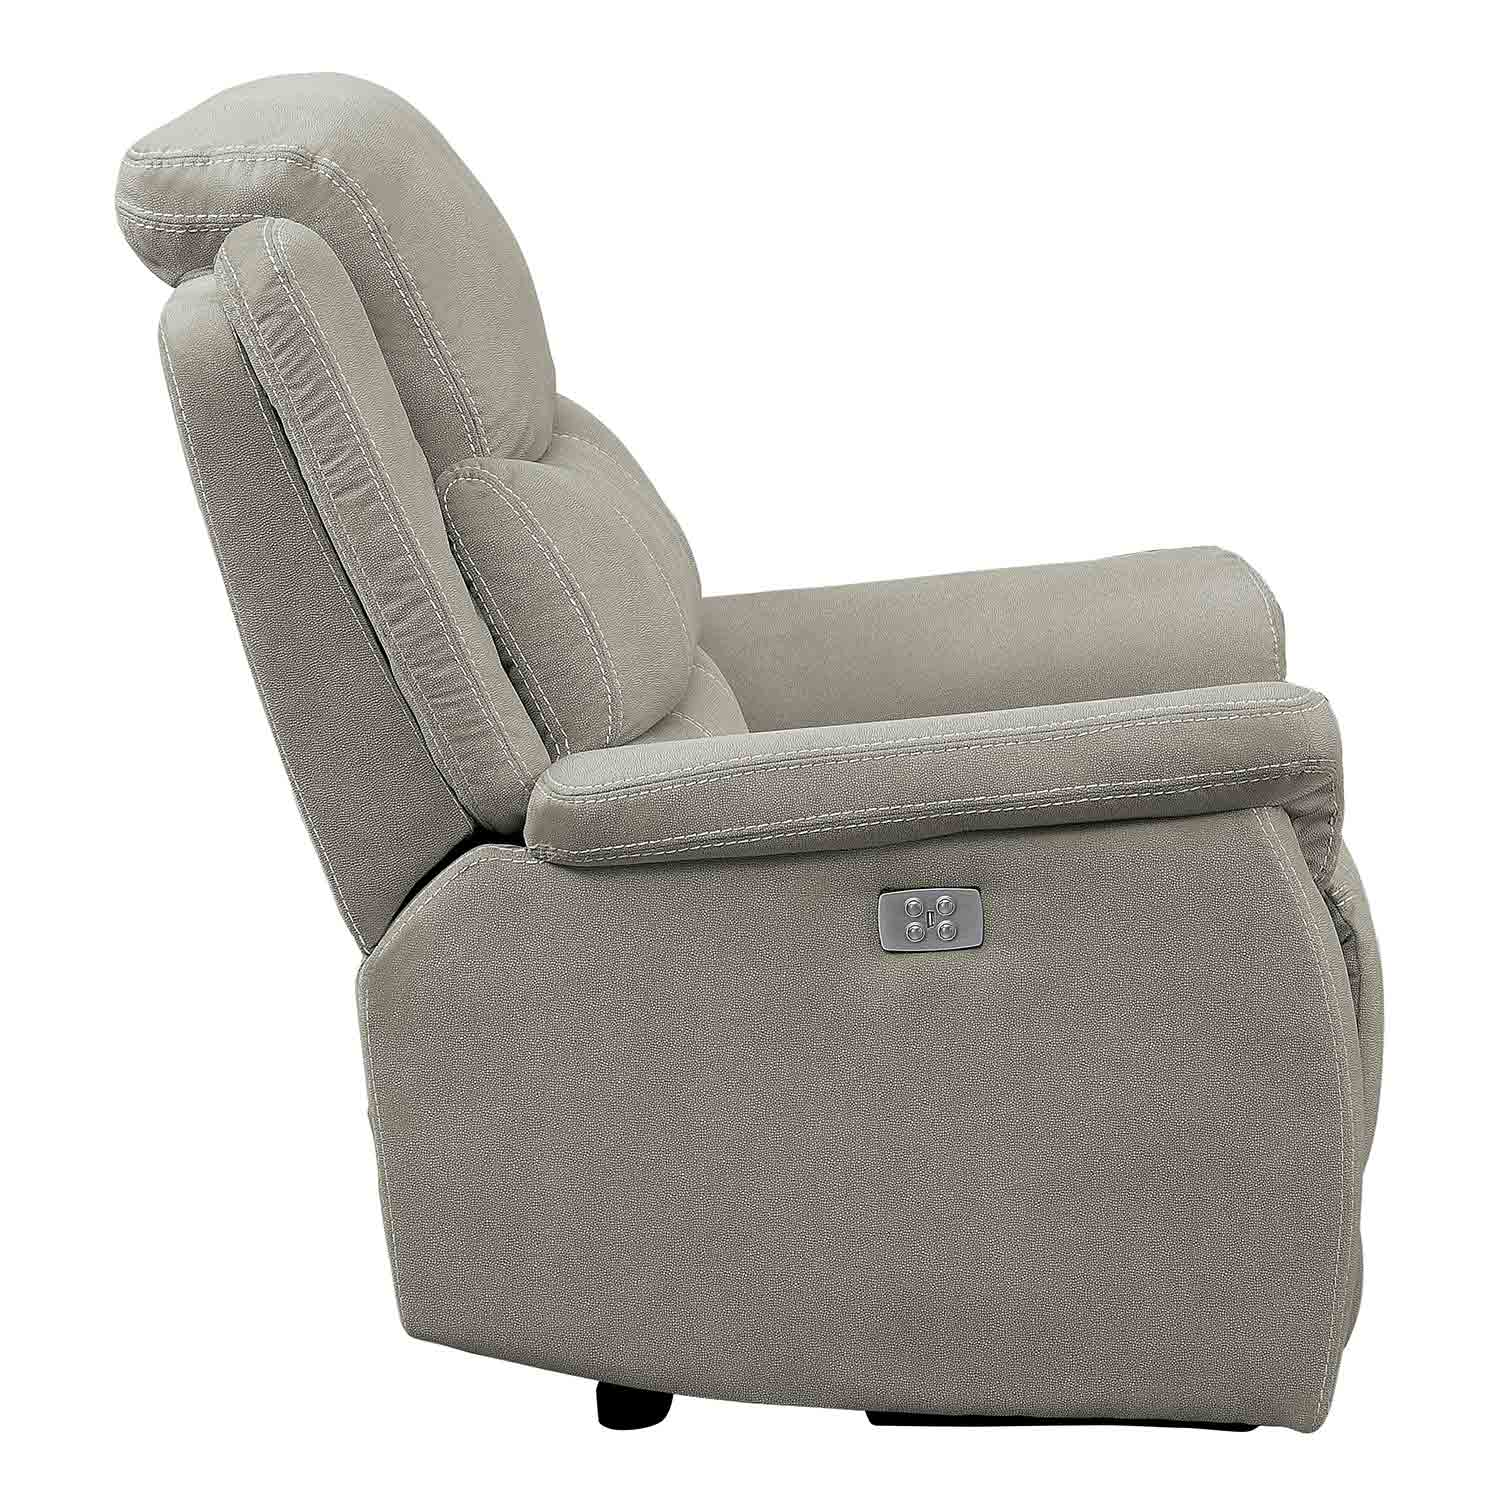 Homelegance Shola Power Reclining Chair with Power Headrest - Gray